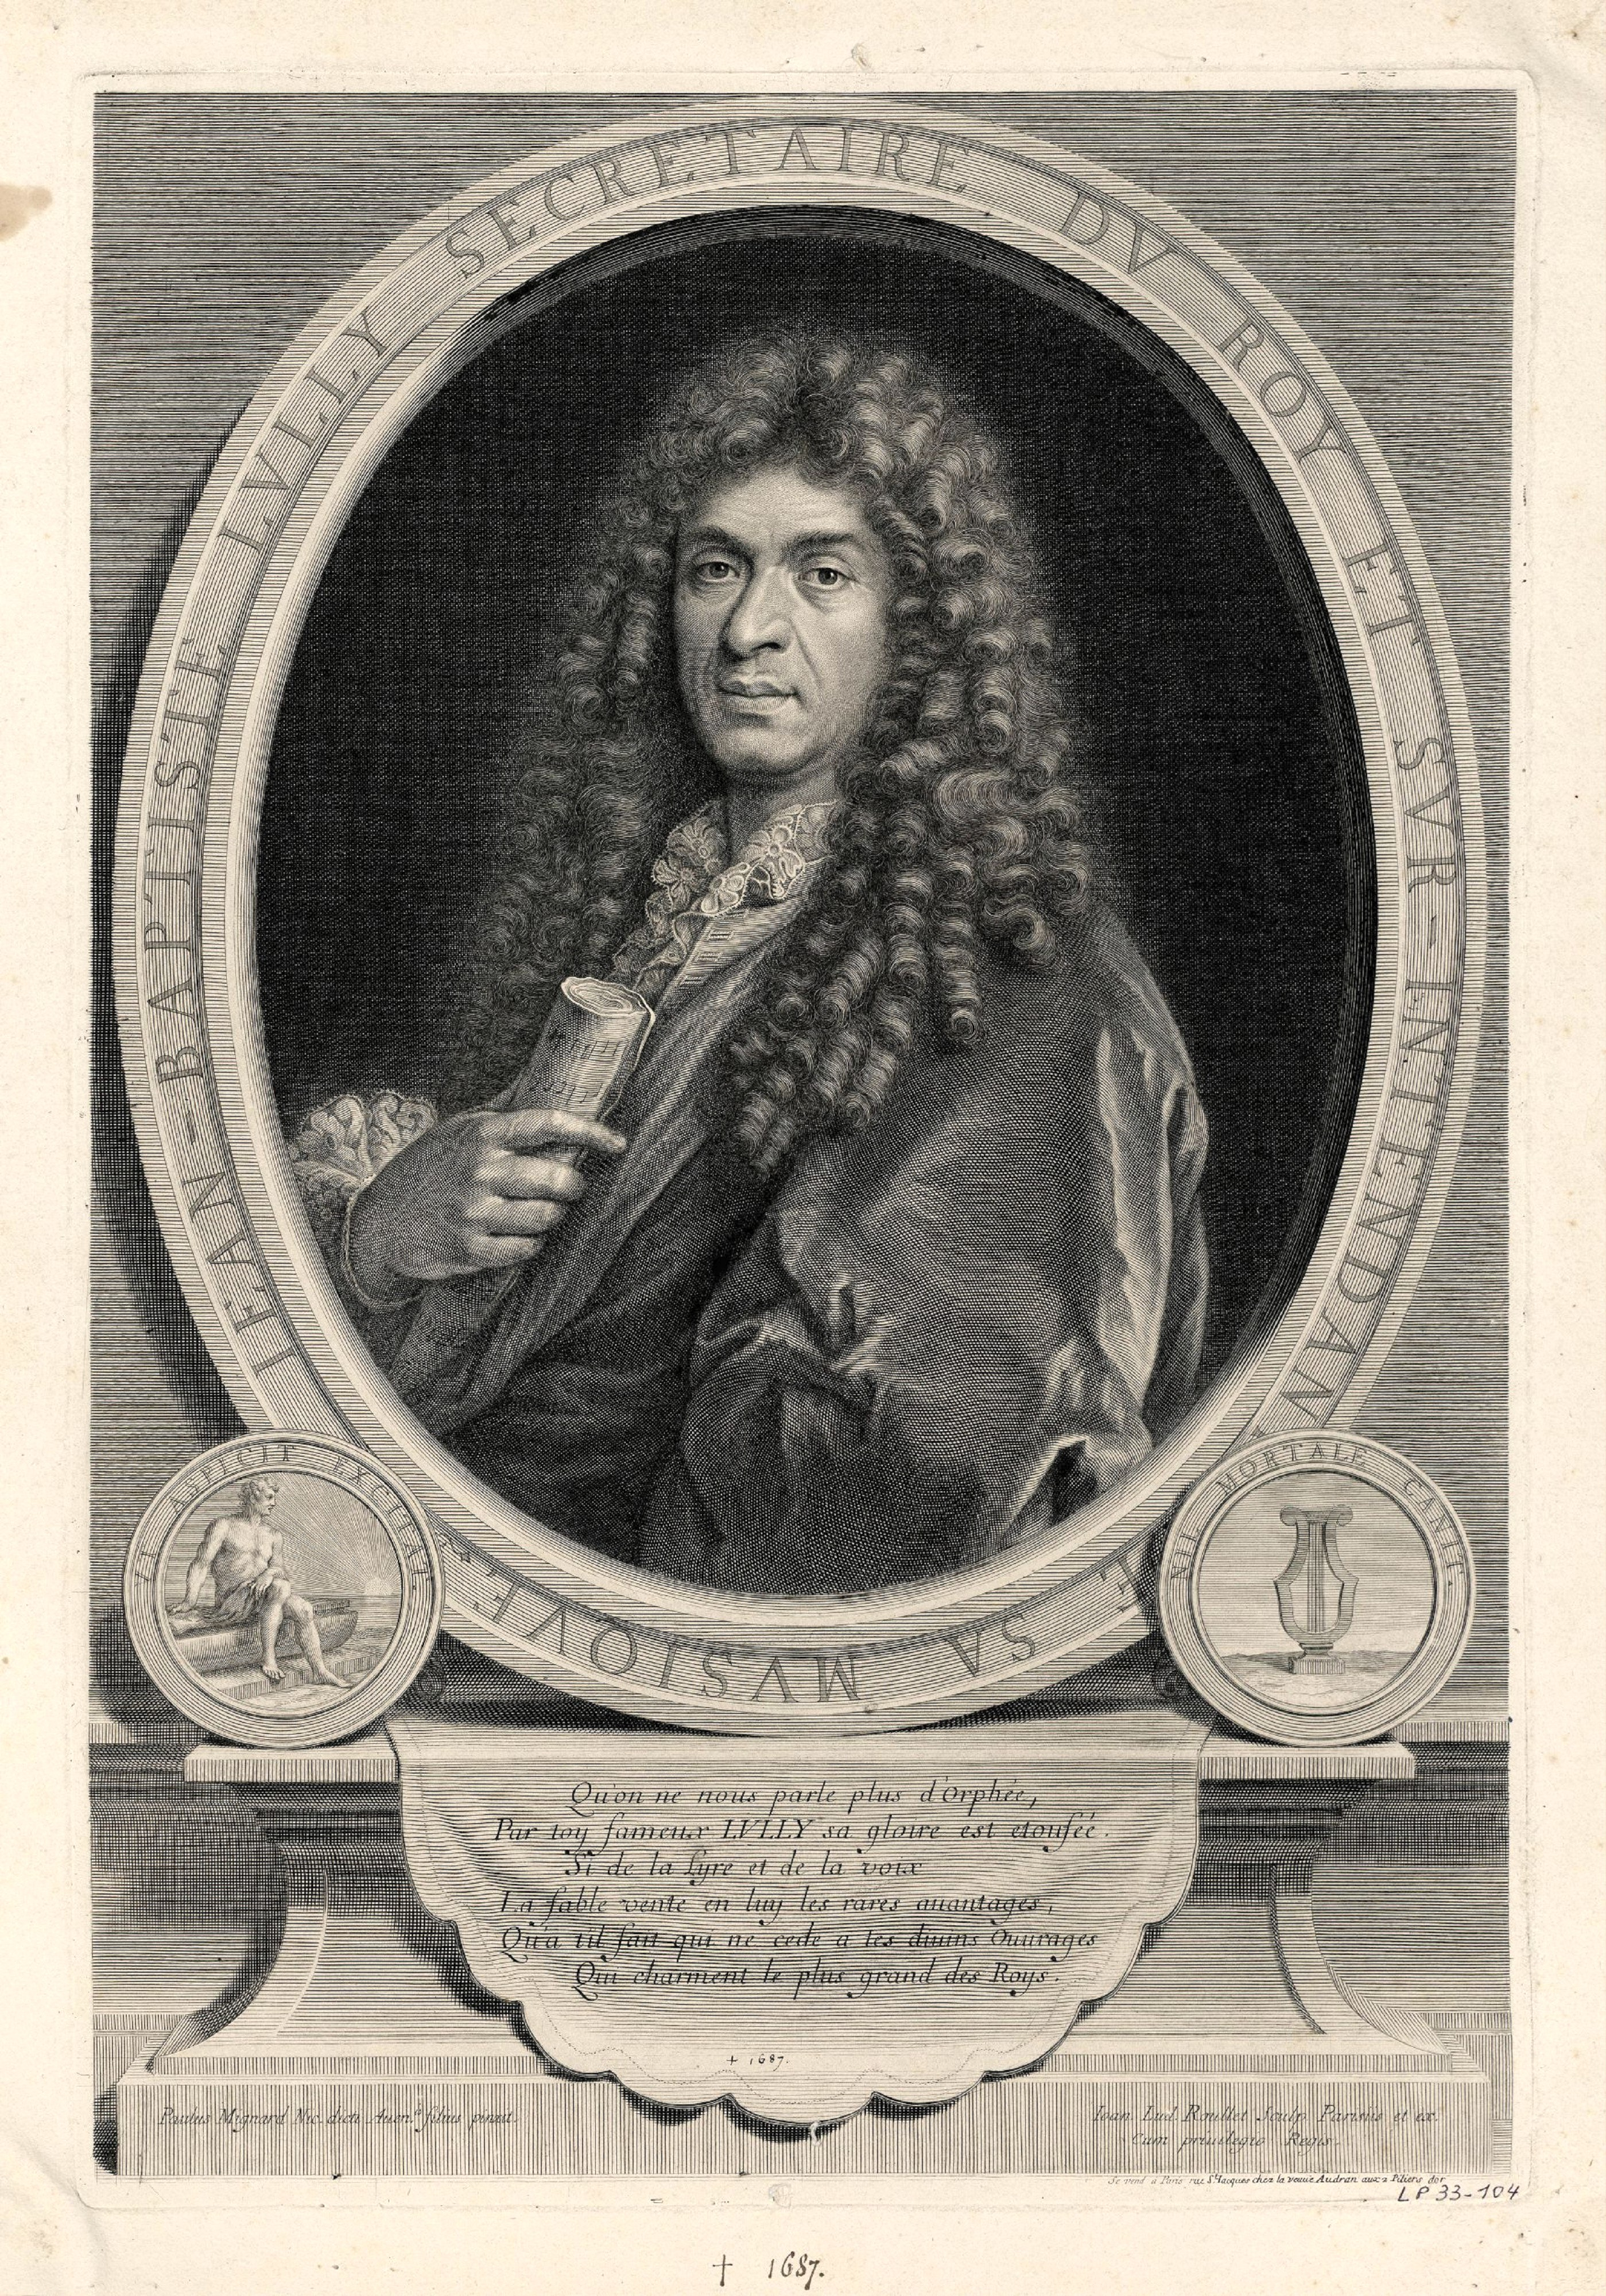 jean baptiste lully Bio jean-baptiste lully was born in italy, the son of a miller when he was a young boy, his mother died, and he was taken to france to work as a servant in the home of a rich aristocrat.